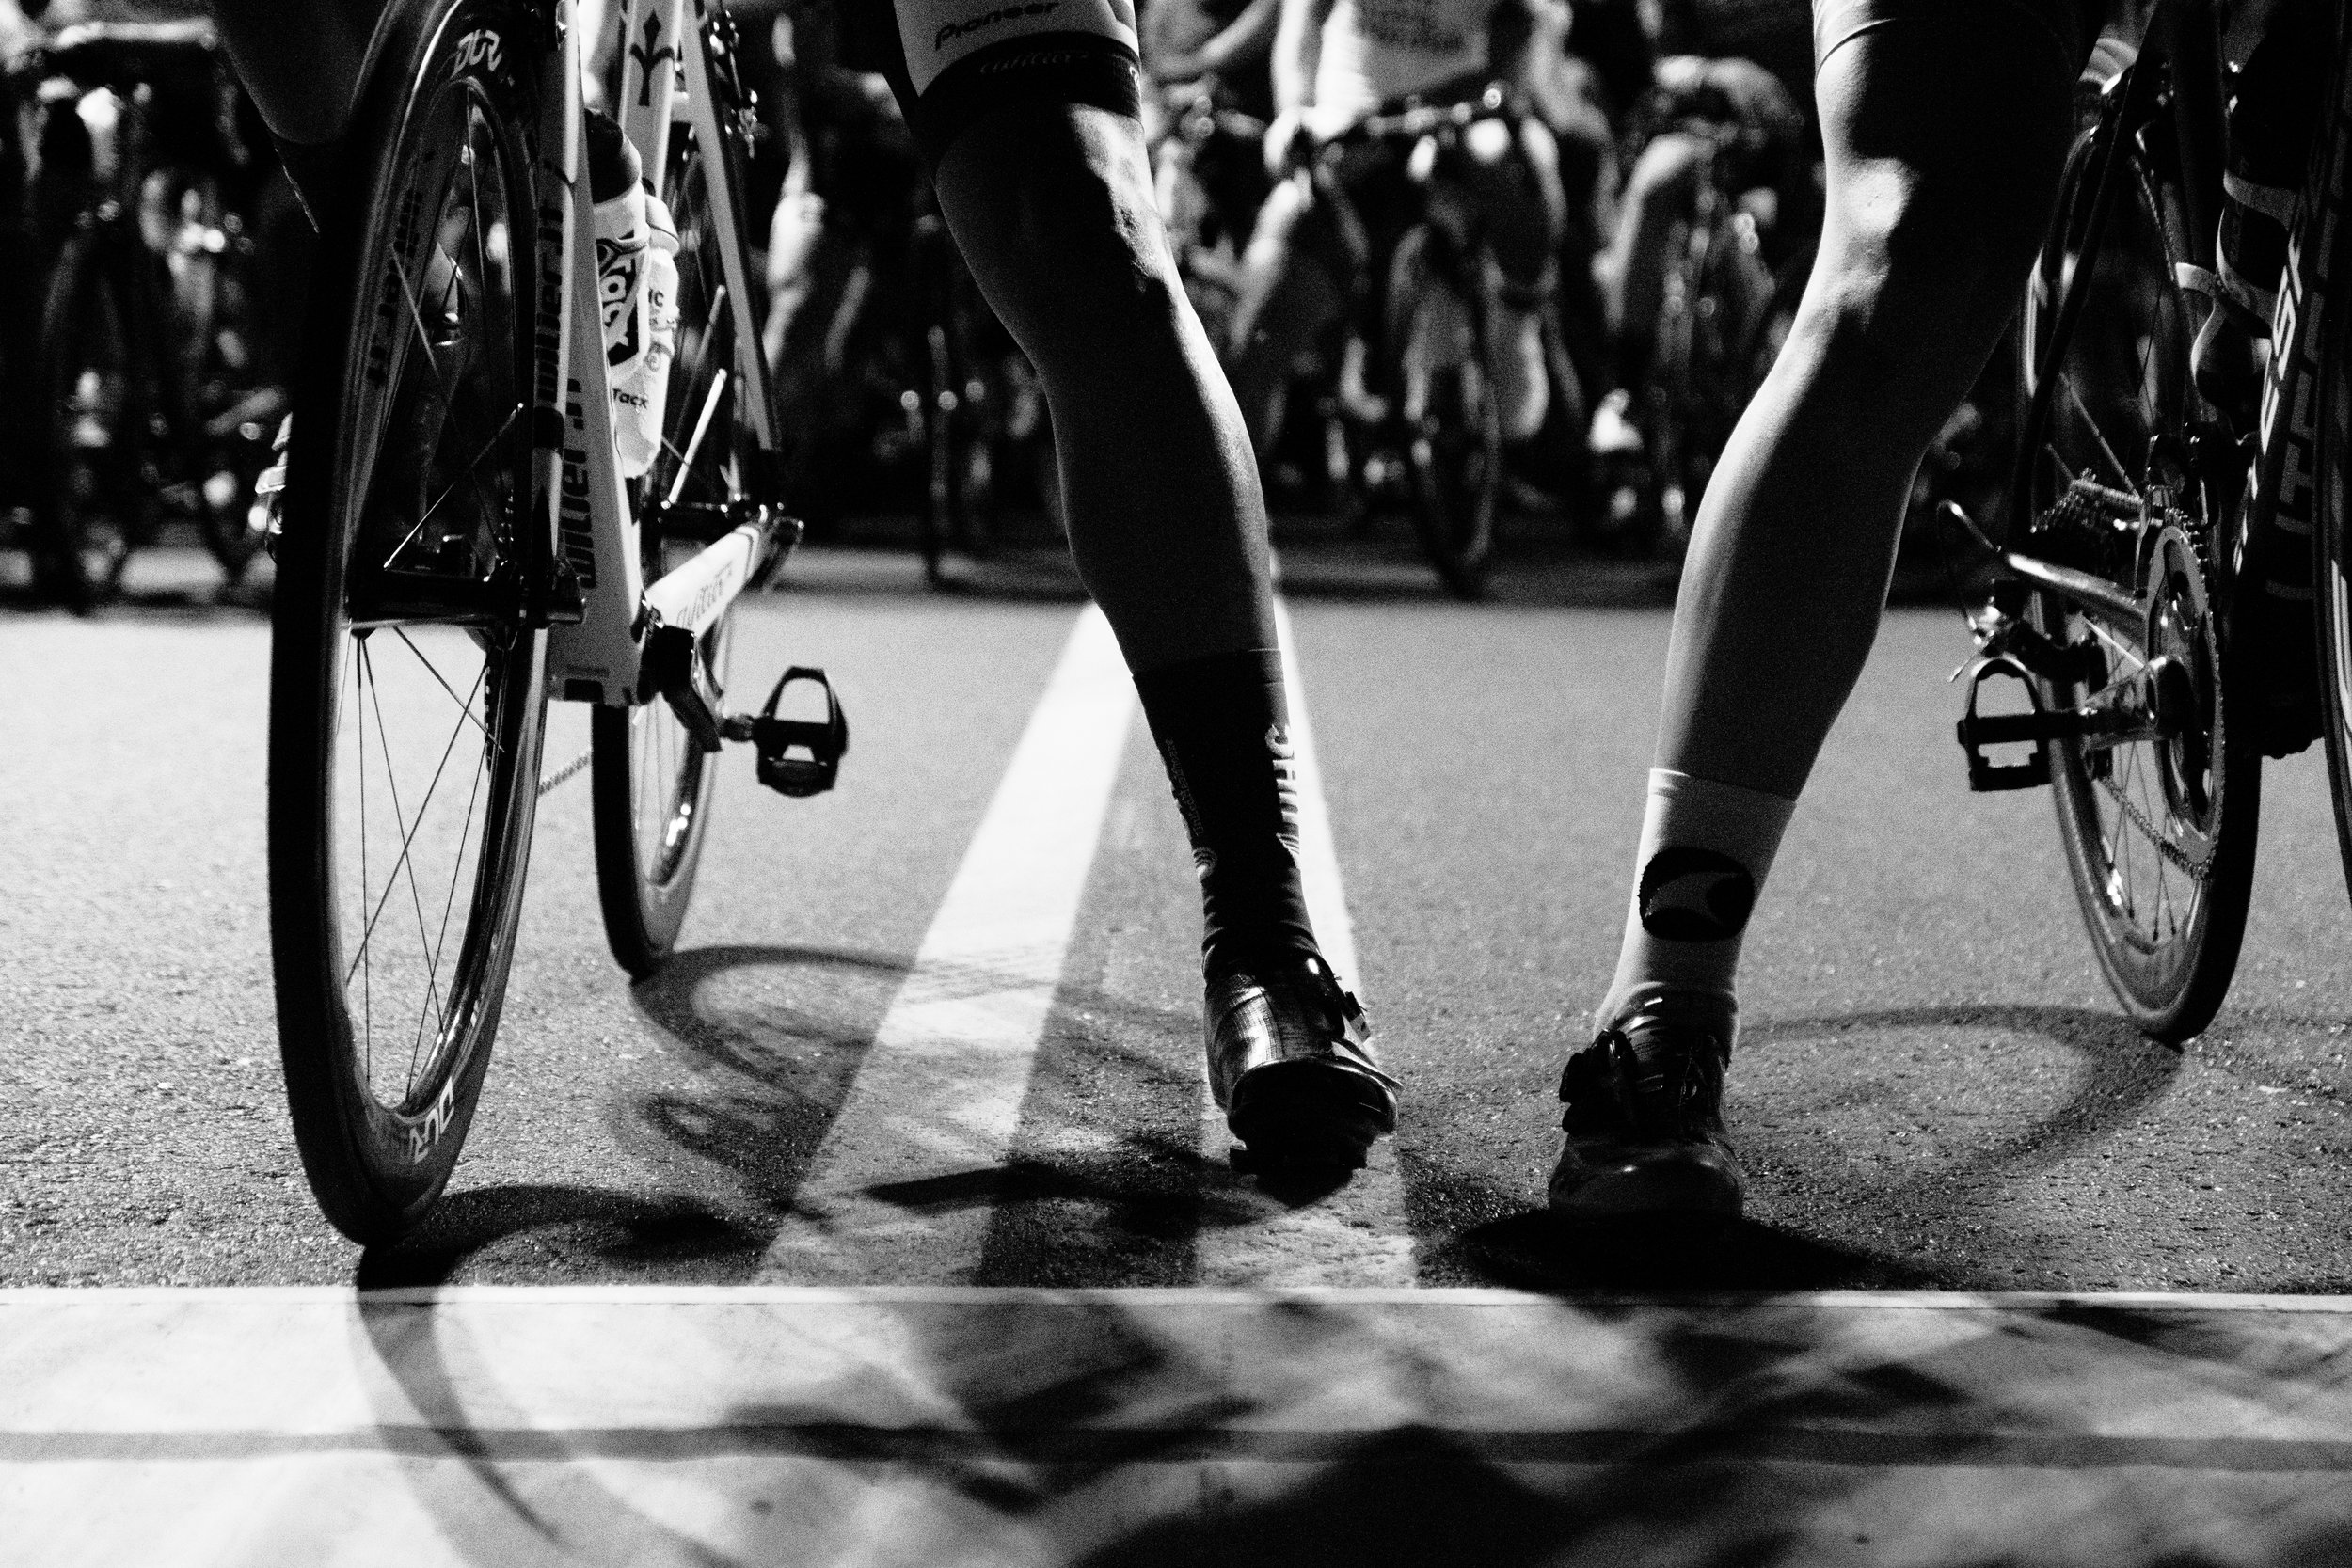 Gateway Cup, Starting Line | Photo: Andy Bokanev, 2015